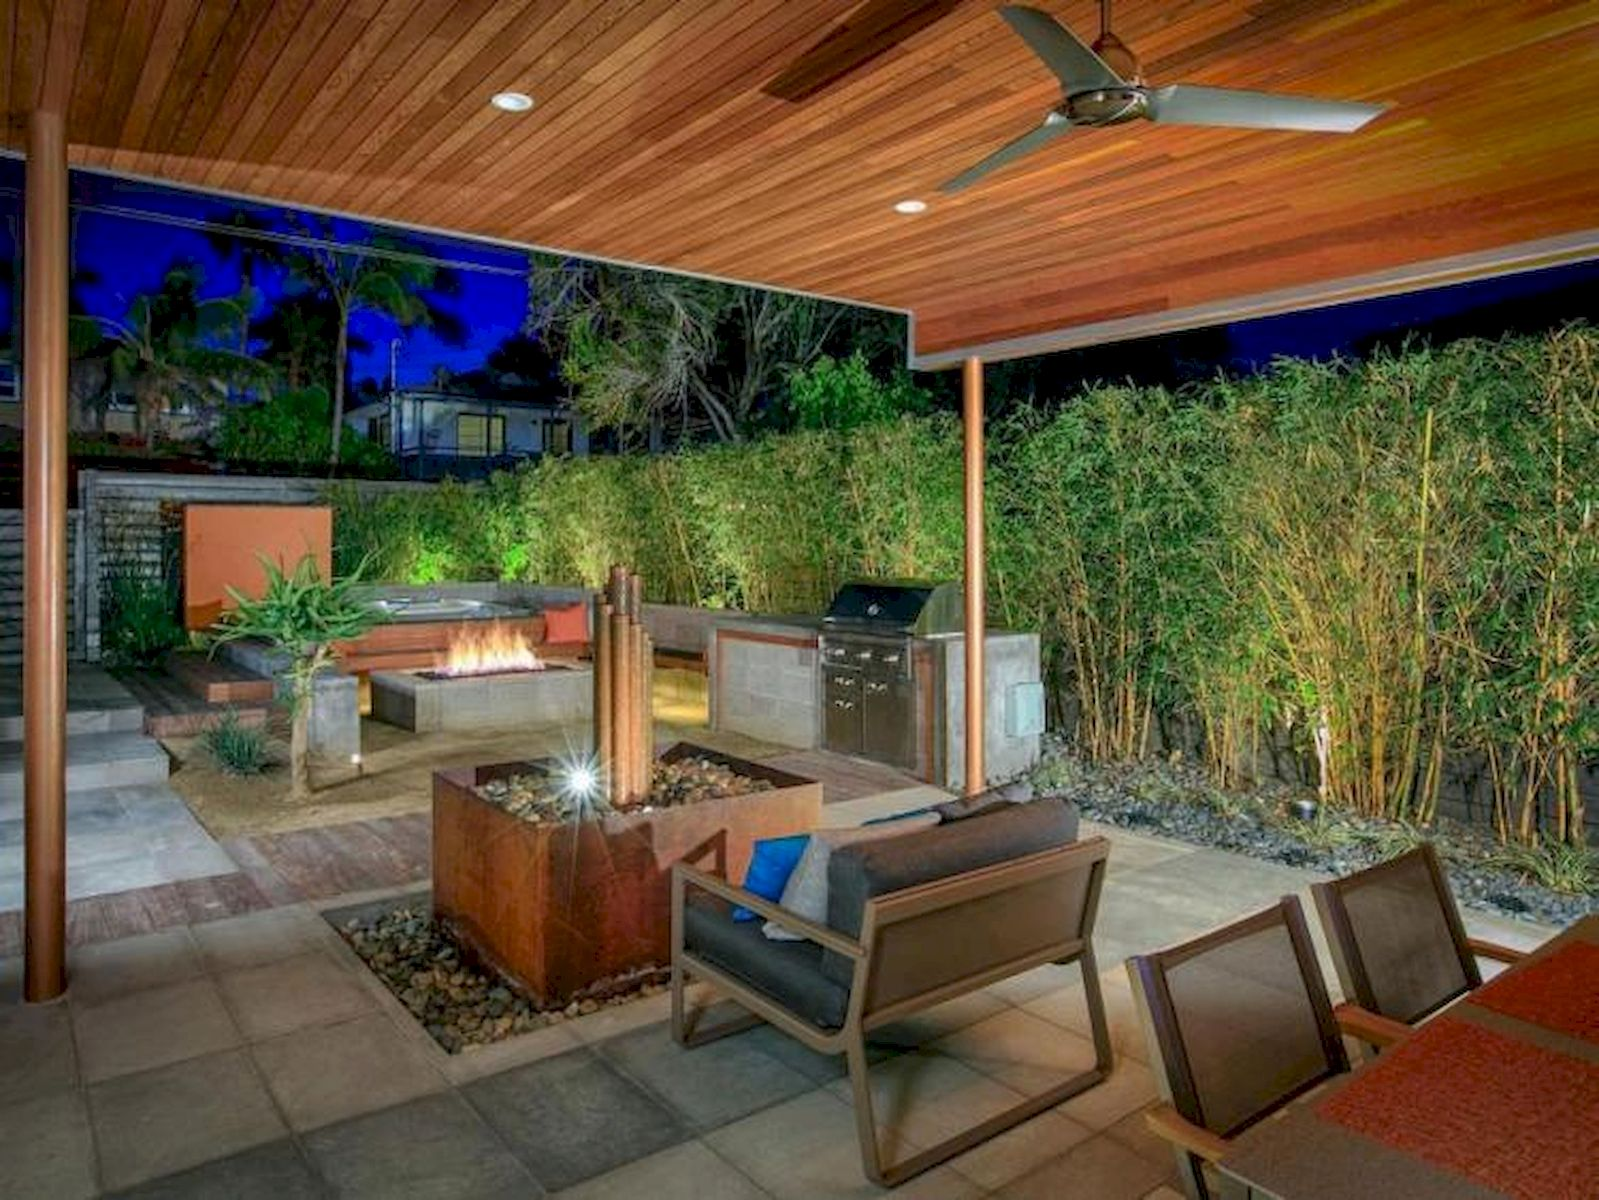 60 Awesome Backyard Privacy Design and Decor Ideas (16)